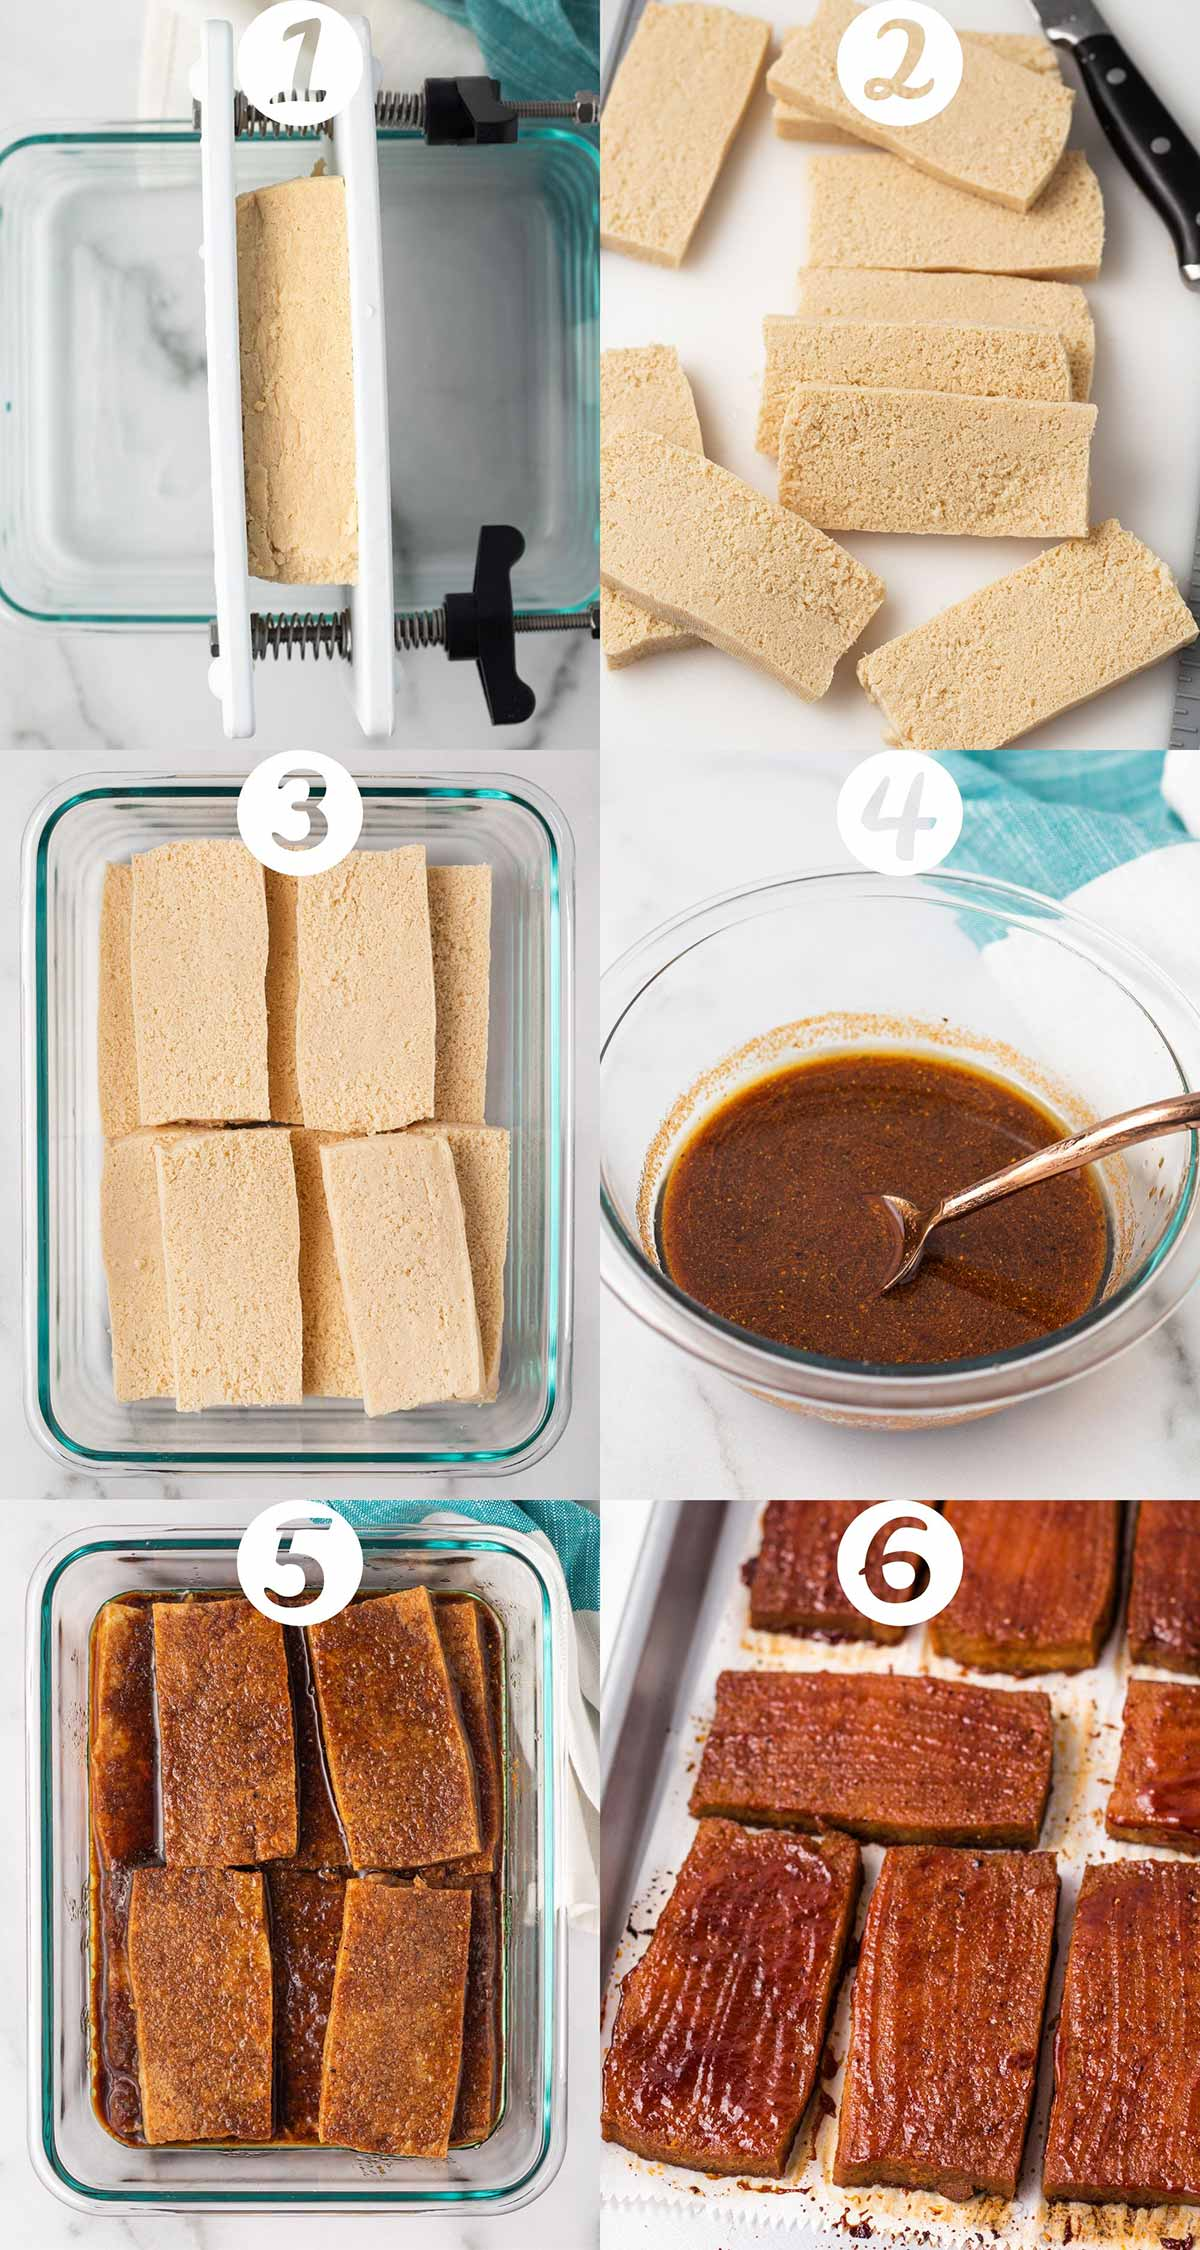 A step-by-step collage of 6 images for making baked BBQ tofu. Images in order: tofu being pressed, tofu sliced on cutting board, sliced tofu in a glass container, marinade in a bowl, marinade poured over tofu, and the finished baked tofu on a sheet pan.